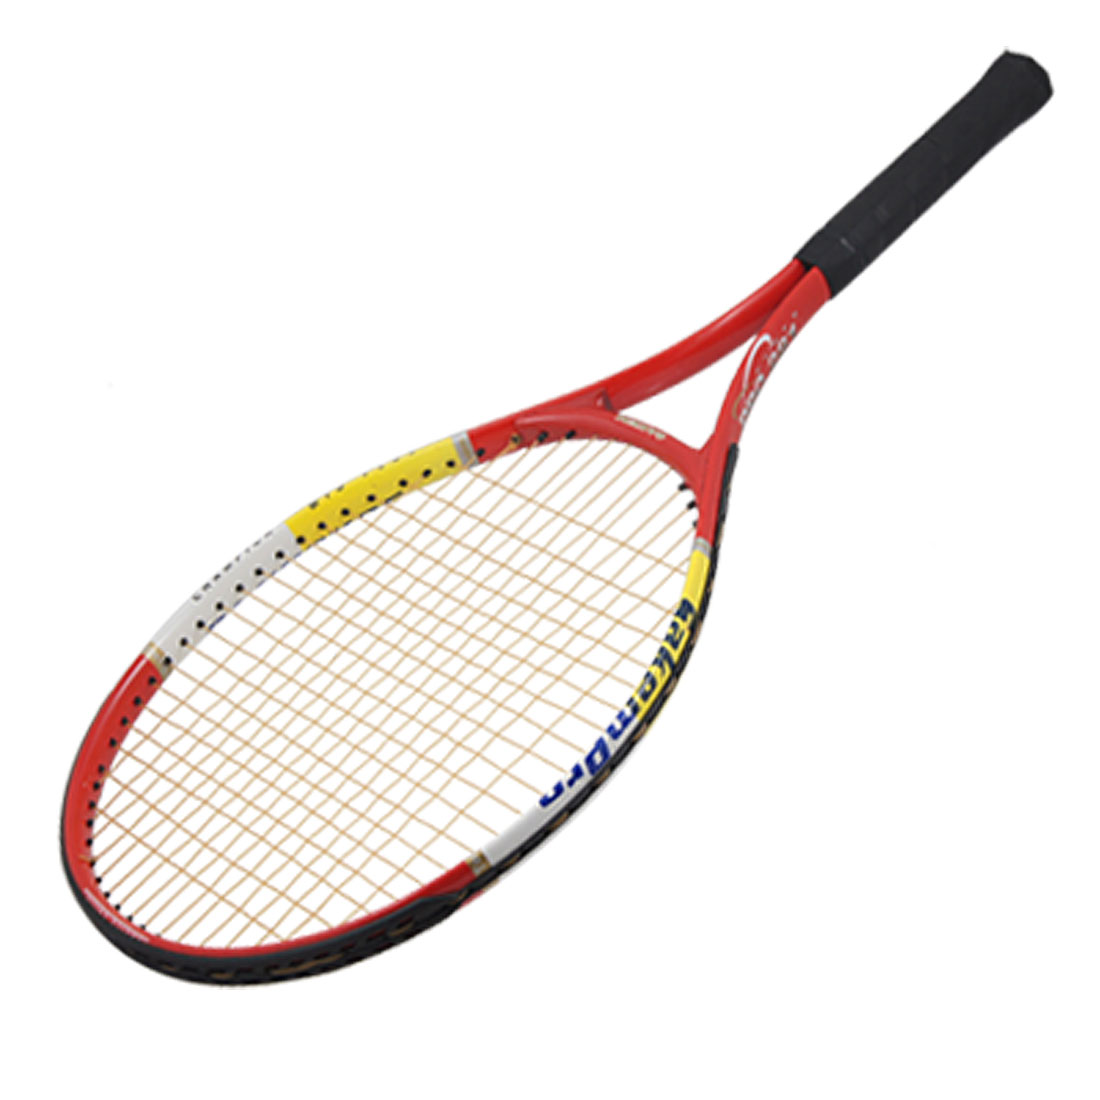 7 Inch Grip Tennis Sports Racket Alloy Racquet